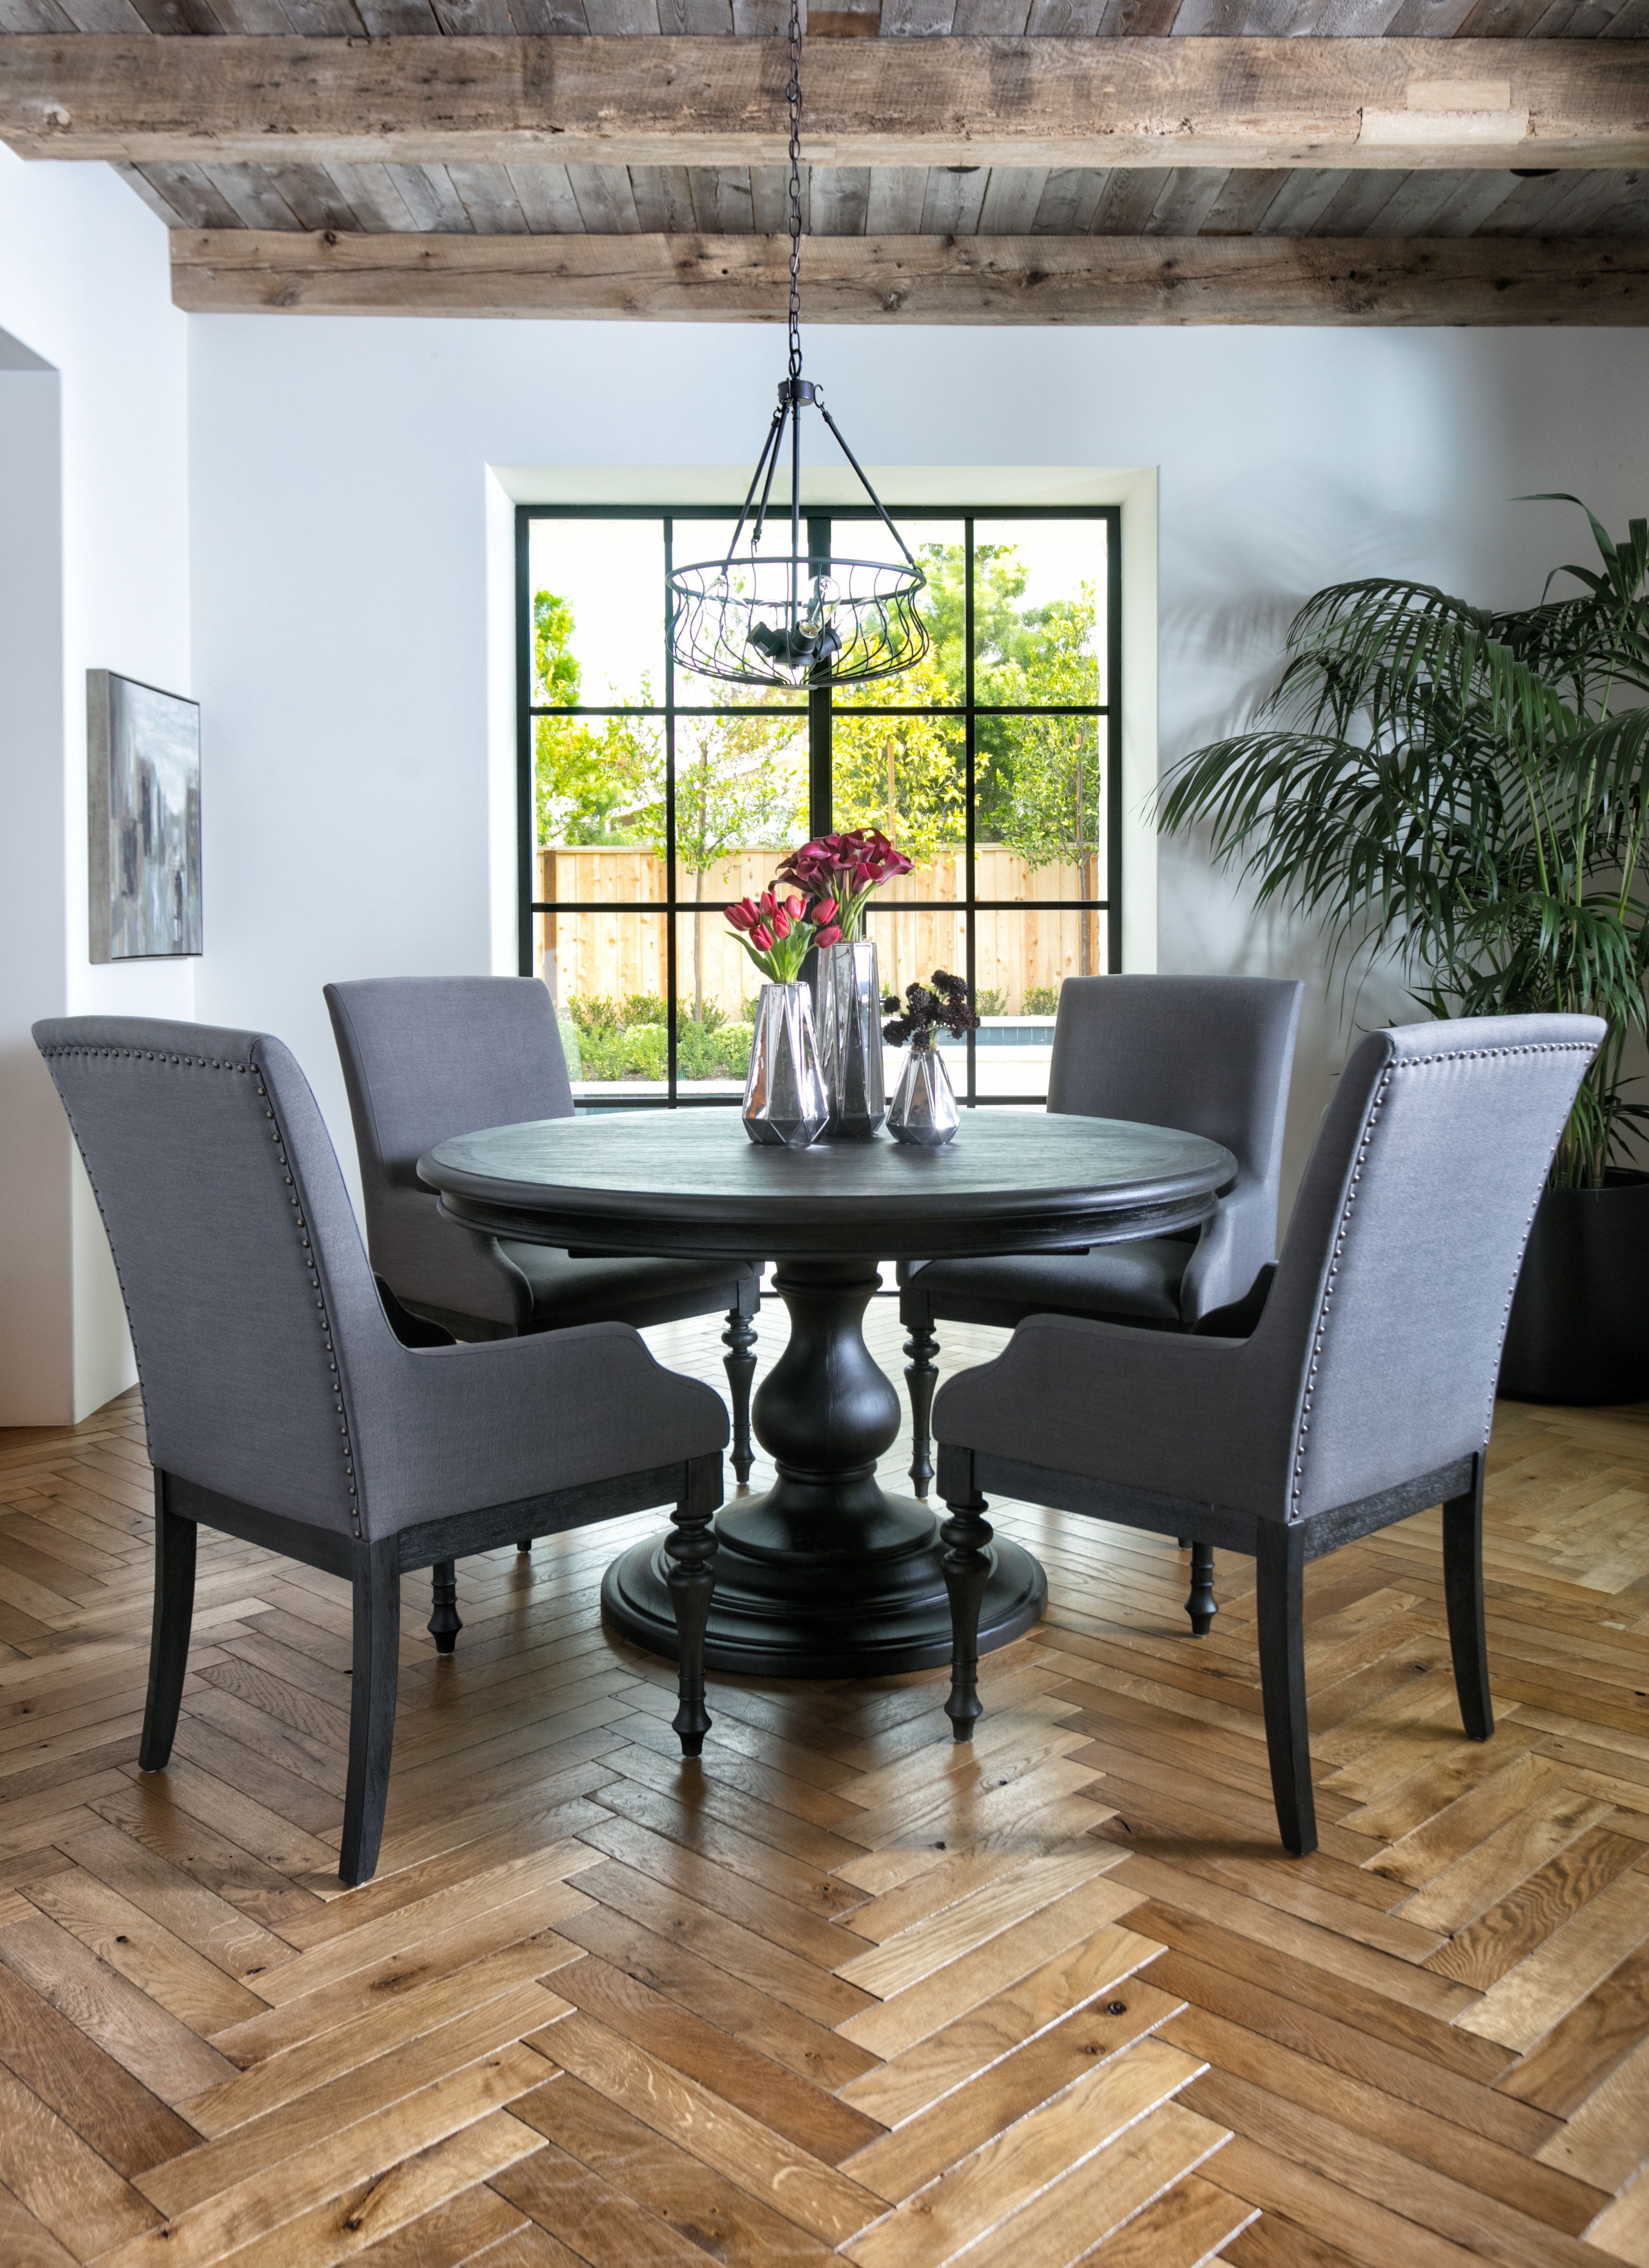 Most Recent Caira 7 Piece Rectangular Dining Sets With Upholstered Side Chairs Within Caira Black 5 Piece Round Dining Set With Diamond Back Side Chairs (View 13 of 25)